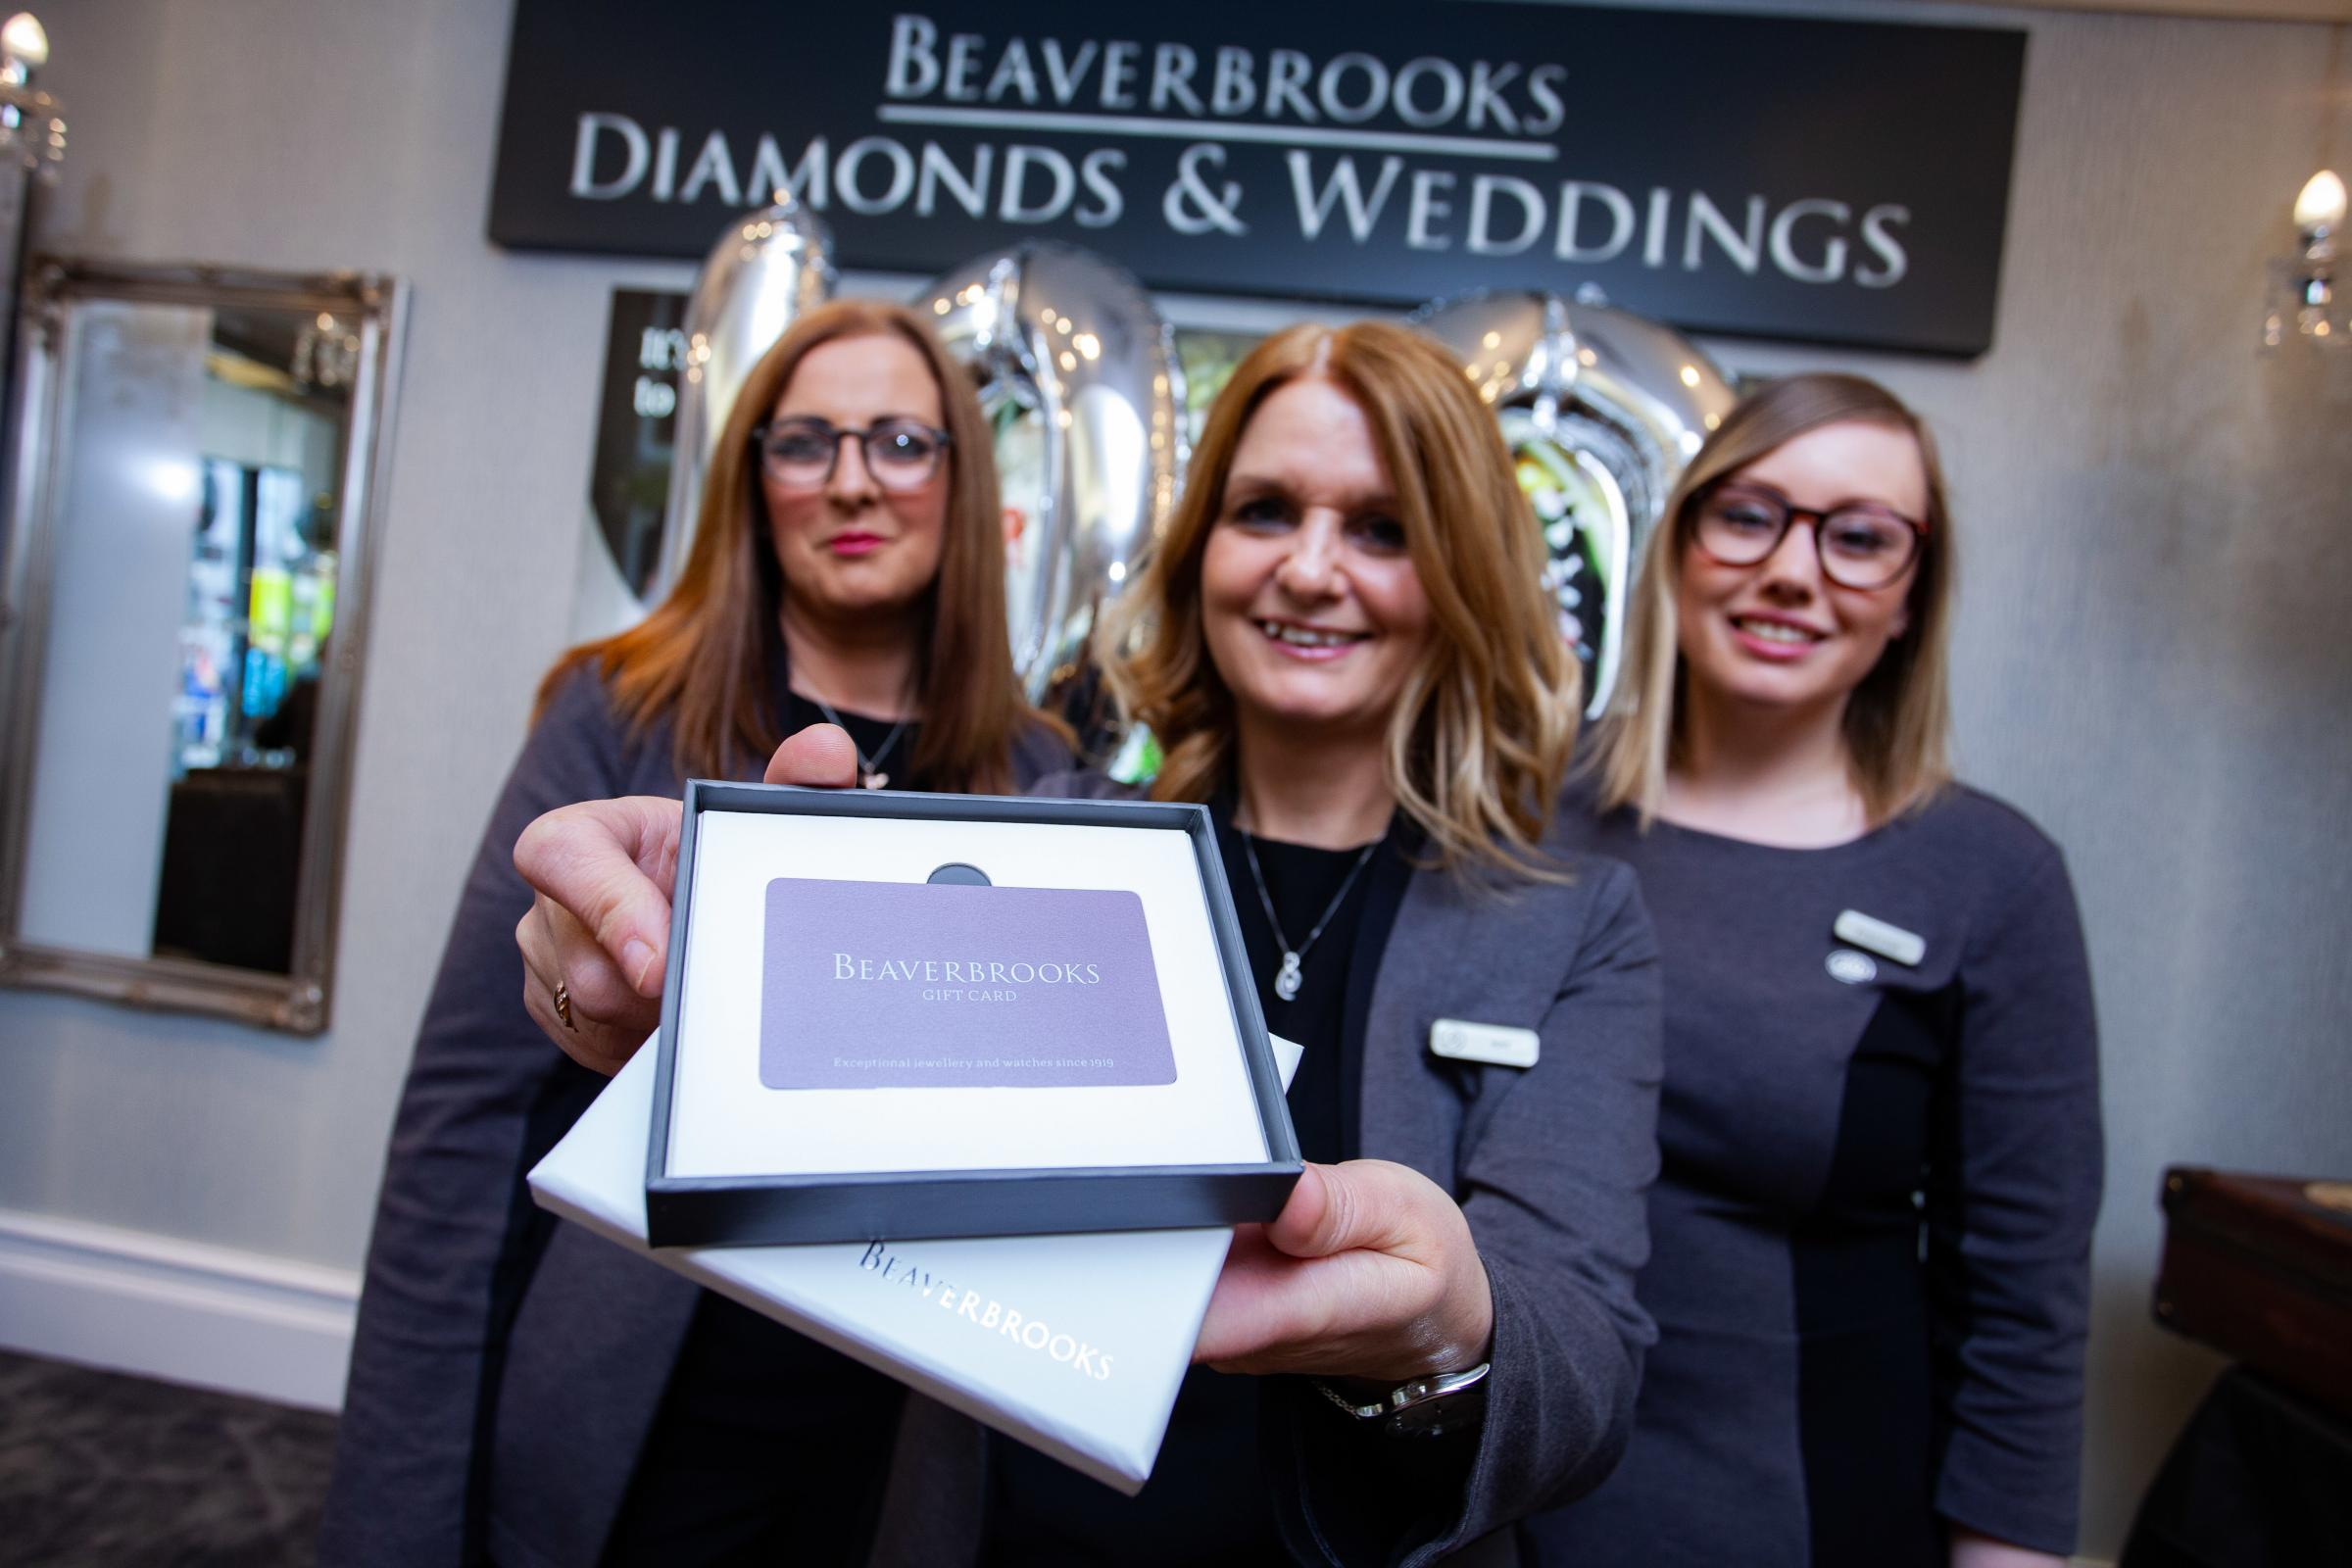 Birkenhead jeweller giving out free £100 gift card to anyone with a birthday on this date